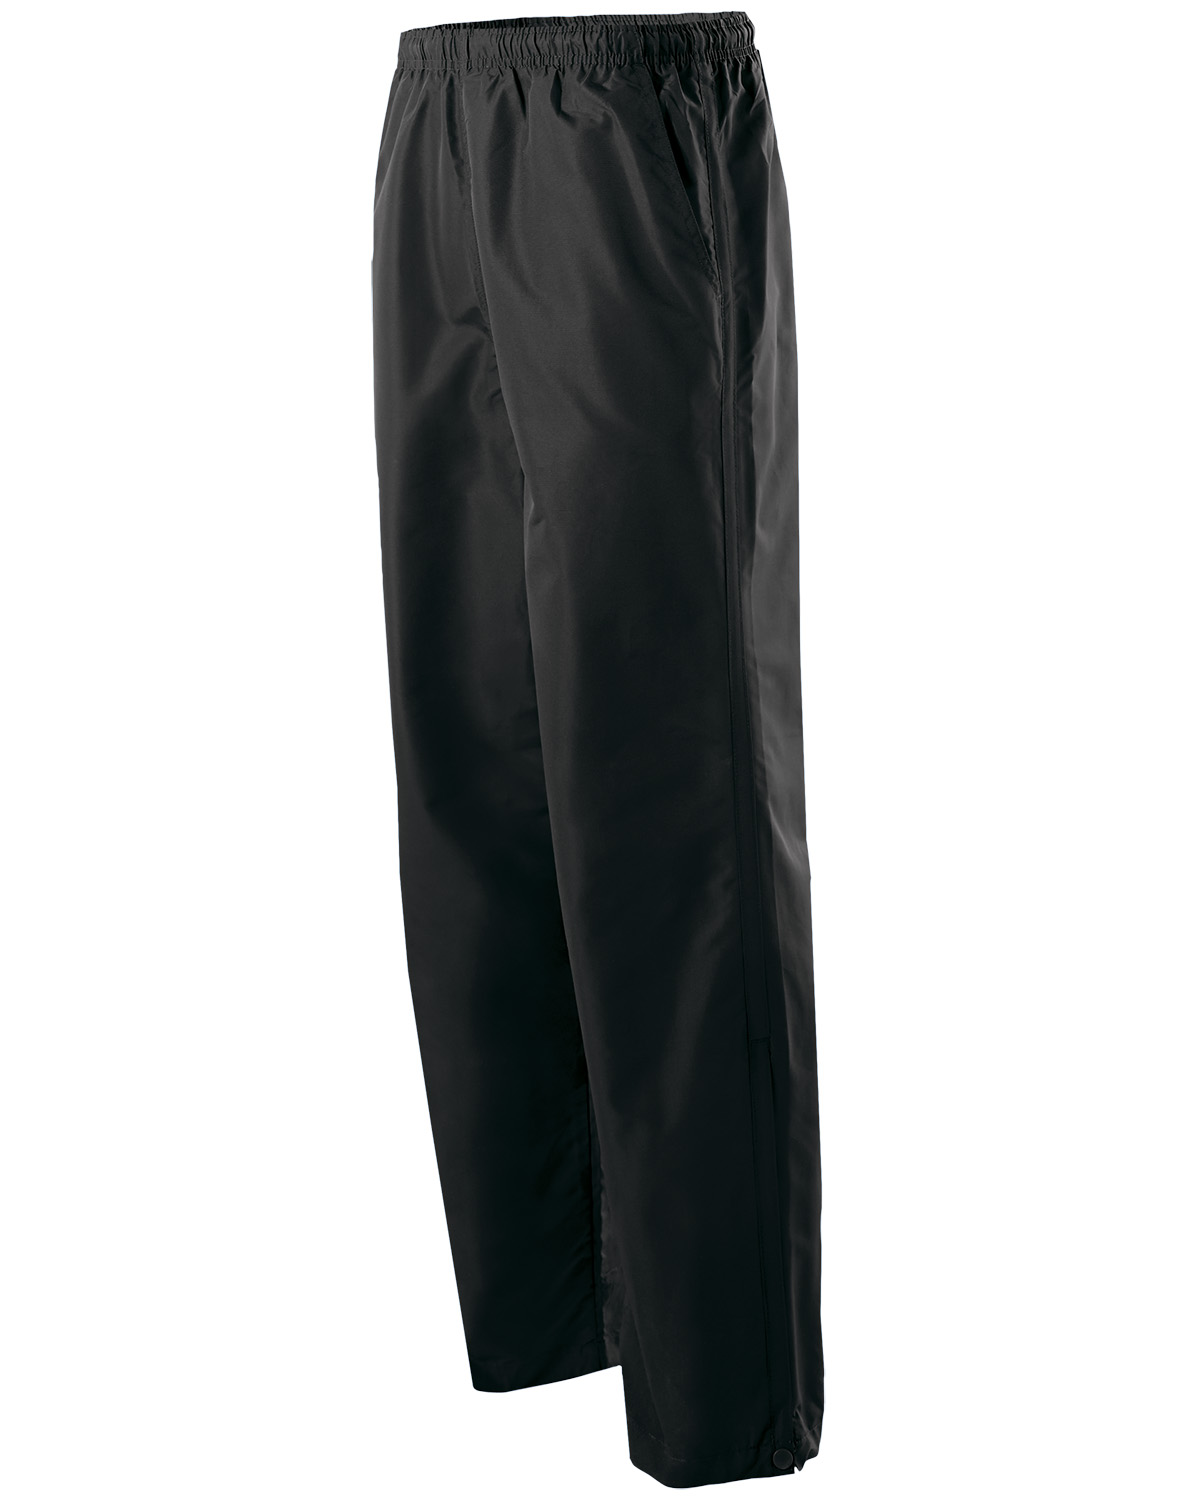 Holloway 229056 - Adult Polyester Pacer Pant